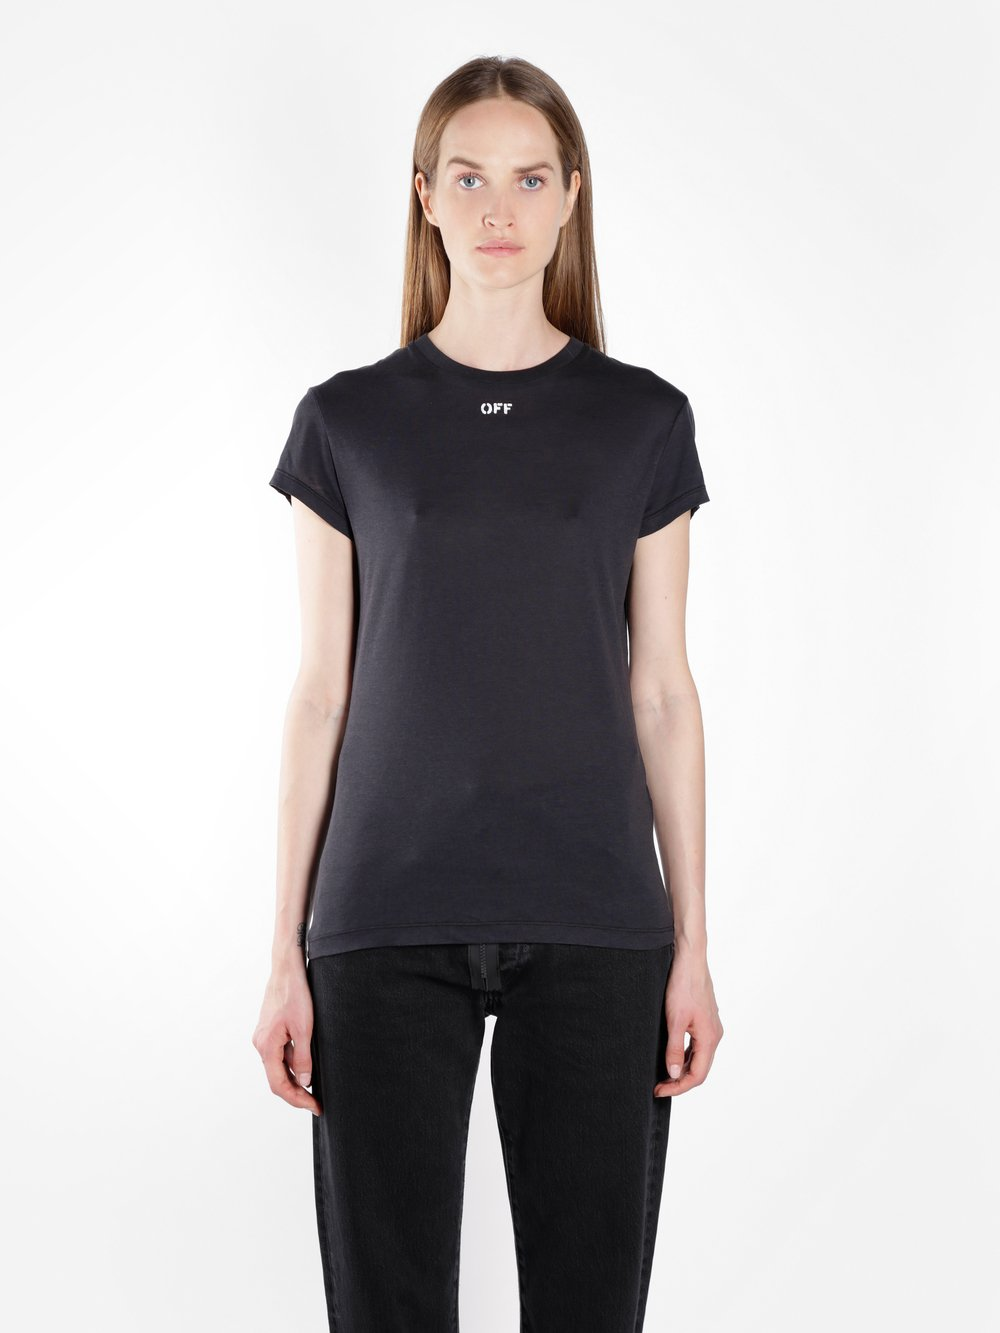 Black Off Fitted T-Shirt Off-white Clearance Reliable oUdAeMvzzt